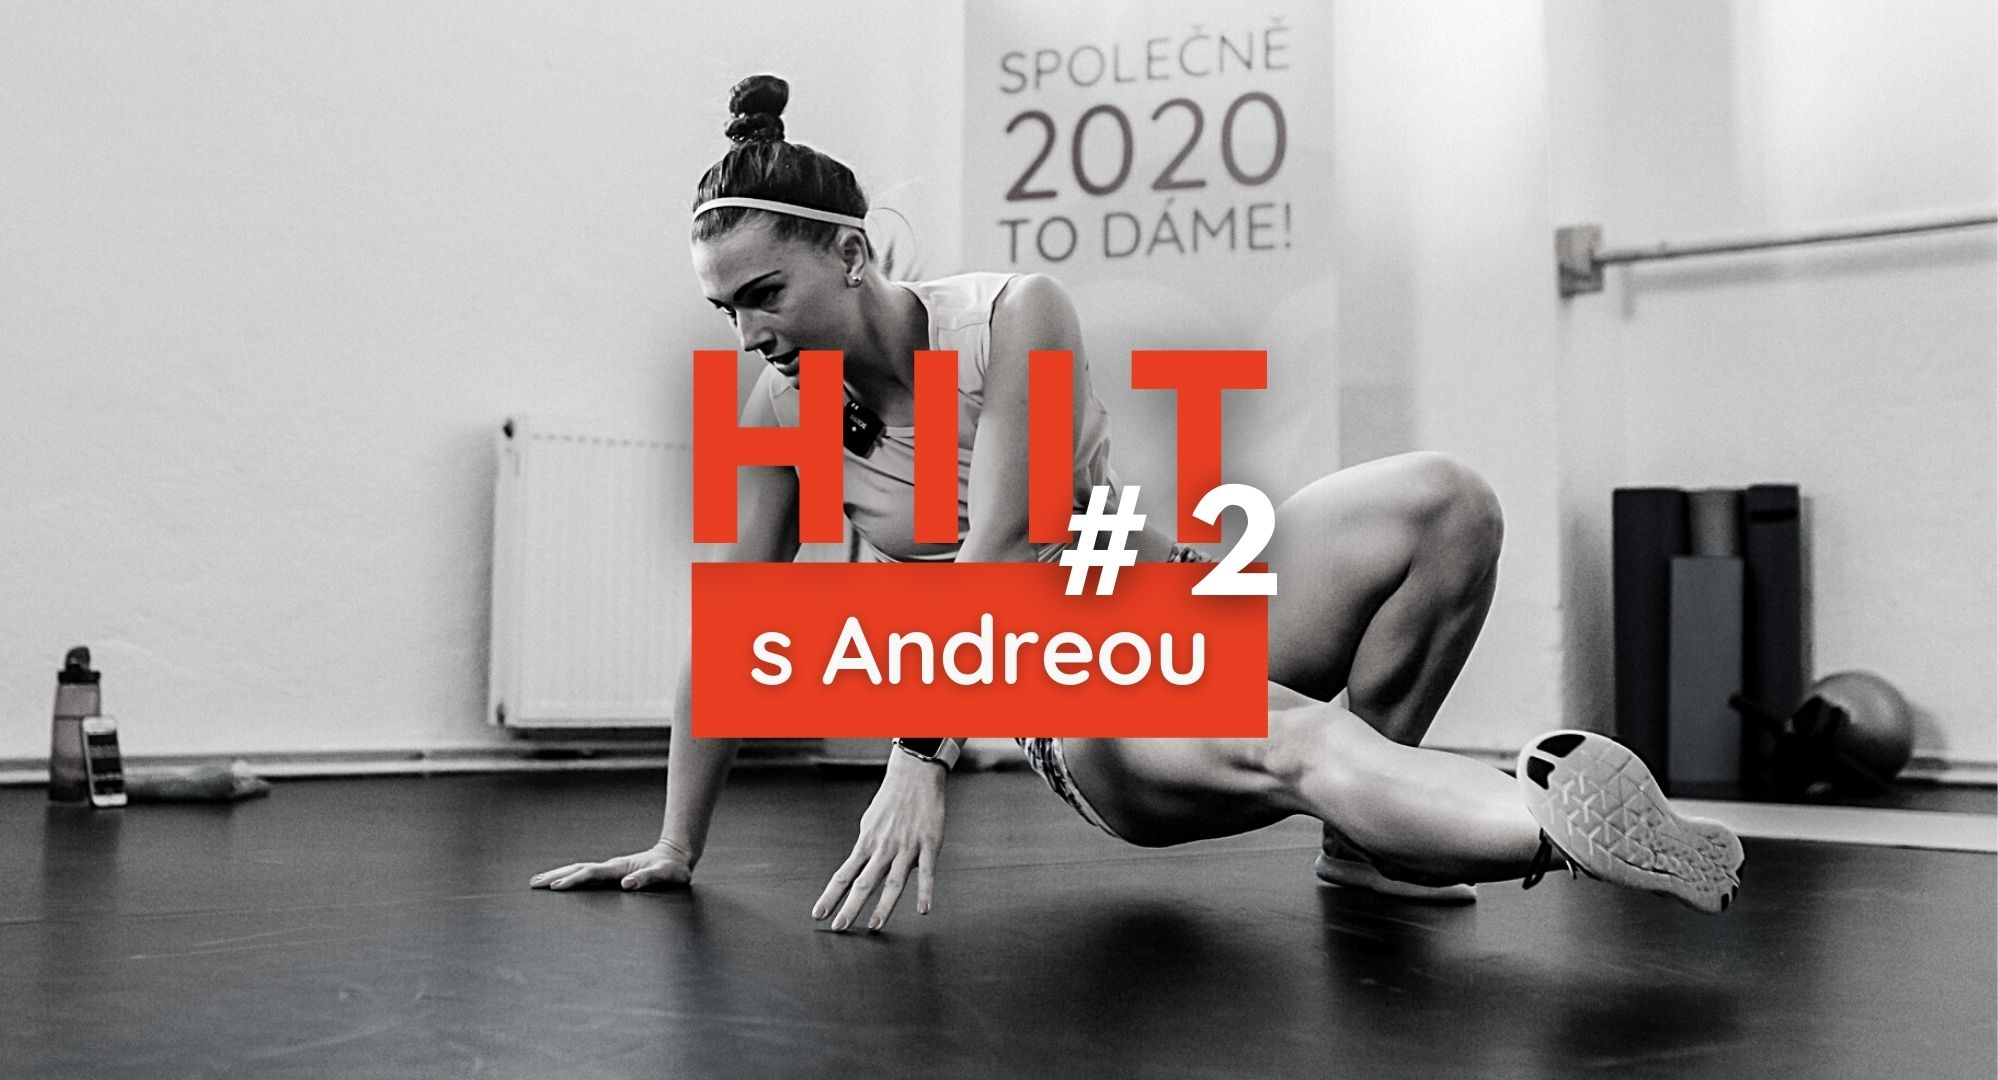 HIIT s Andreou #2